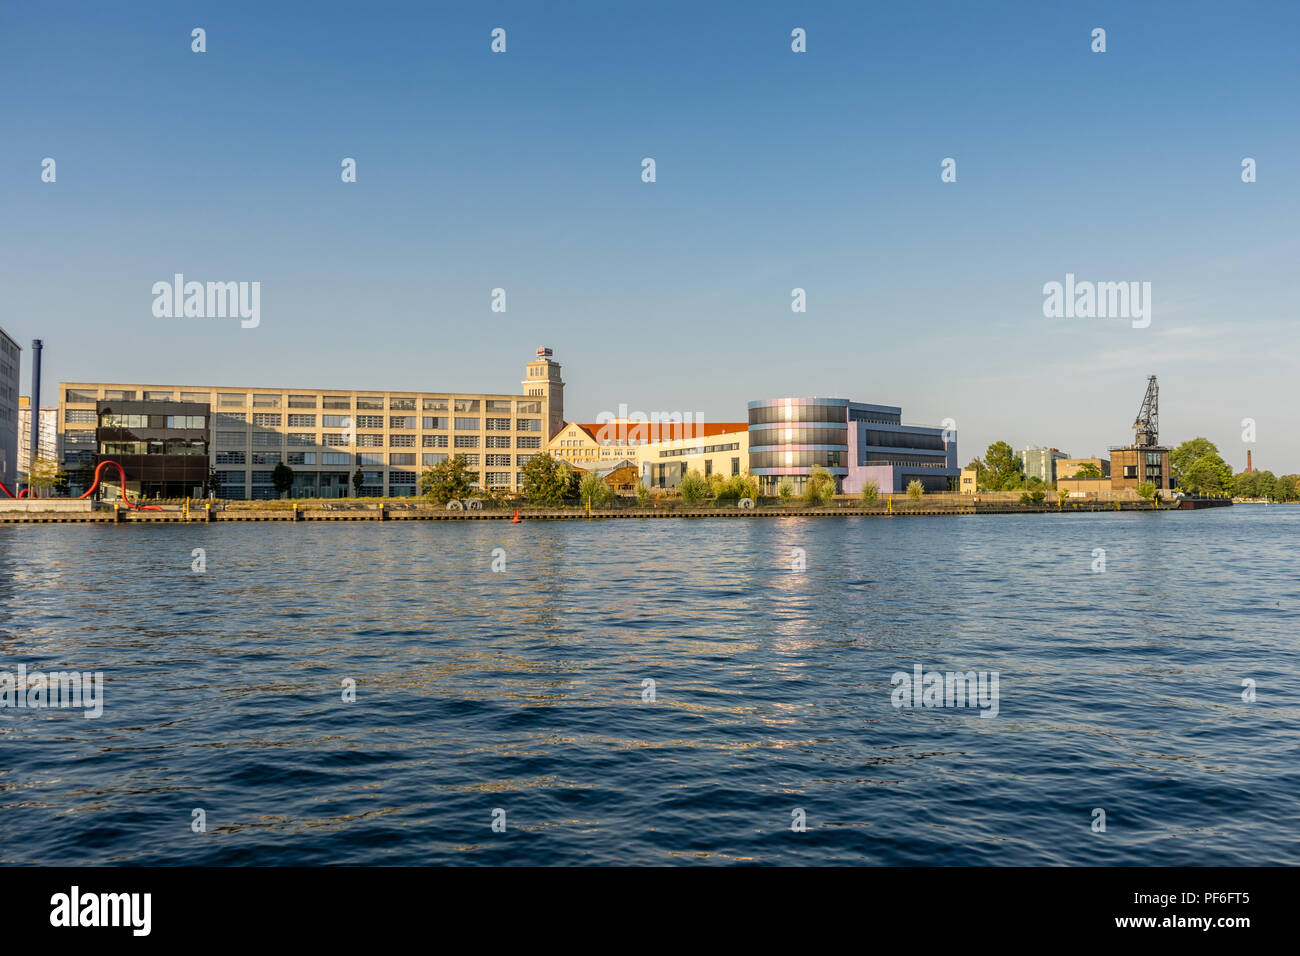 View across the river Spree to the University of Applied Sciences ( Hochschule für Technik und Wirtschaft - HTW) in summer 2018, Berlin, Germany - Stock Image